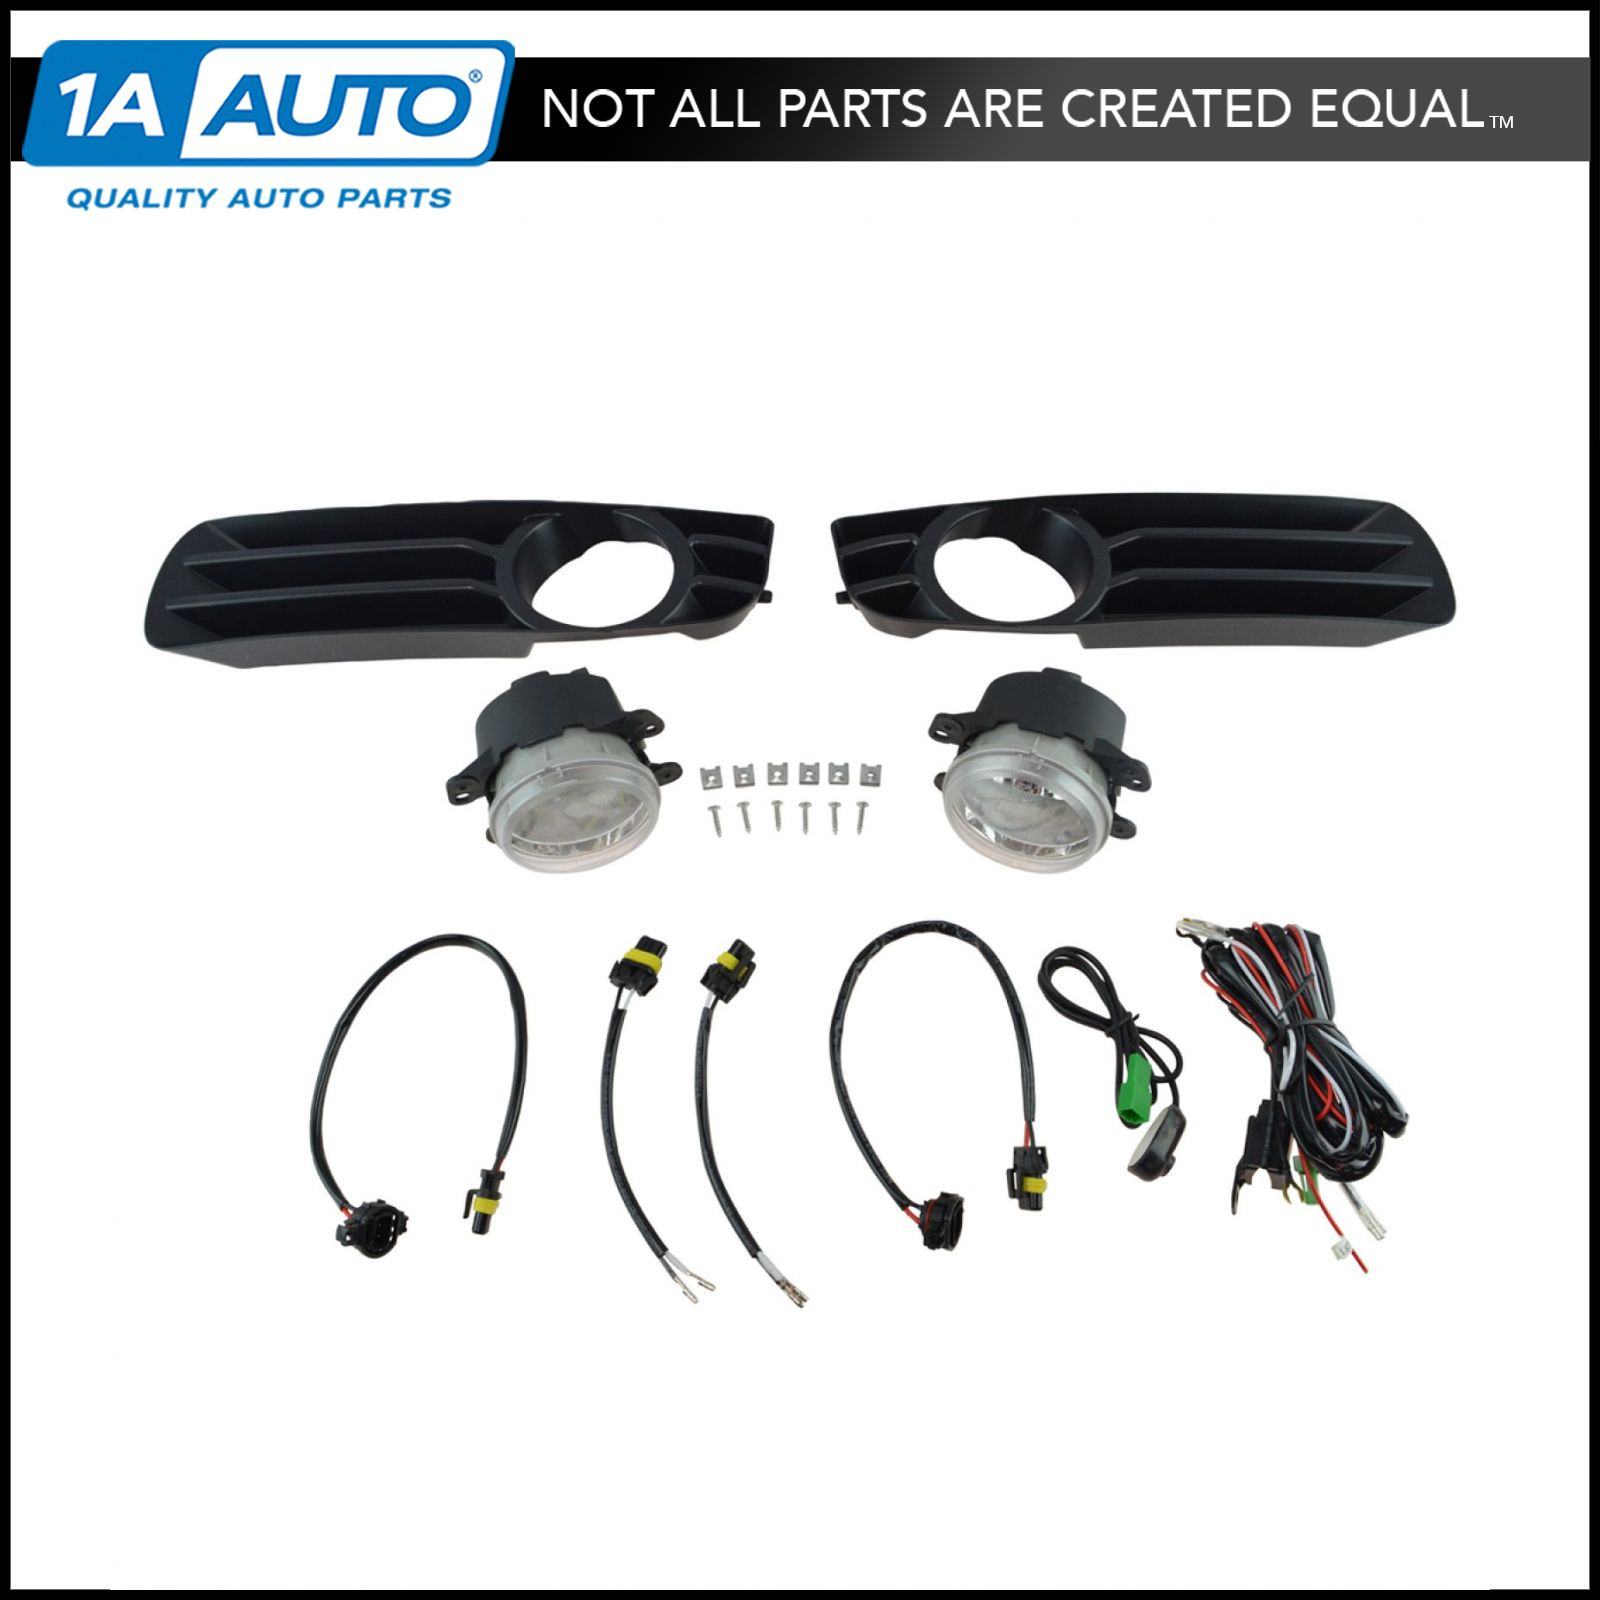 1ALFZ00121 add on upgrade clear lens fog light bulb switch wiring kit set for